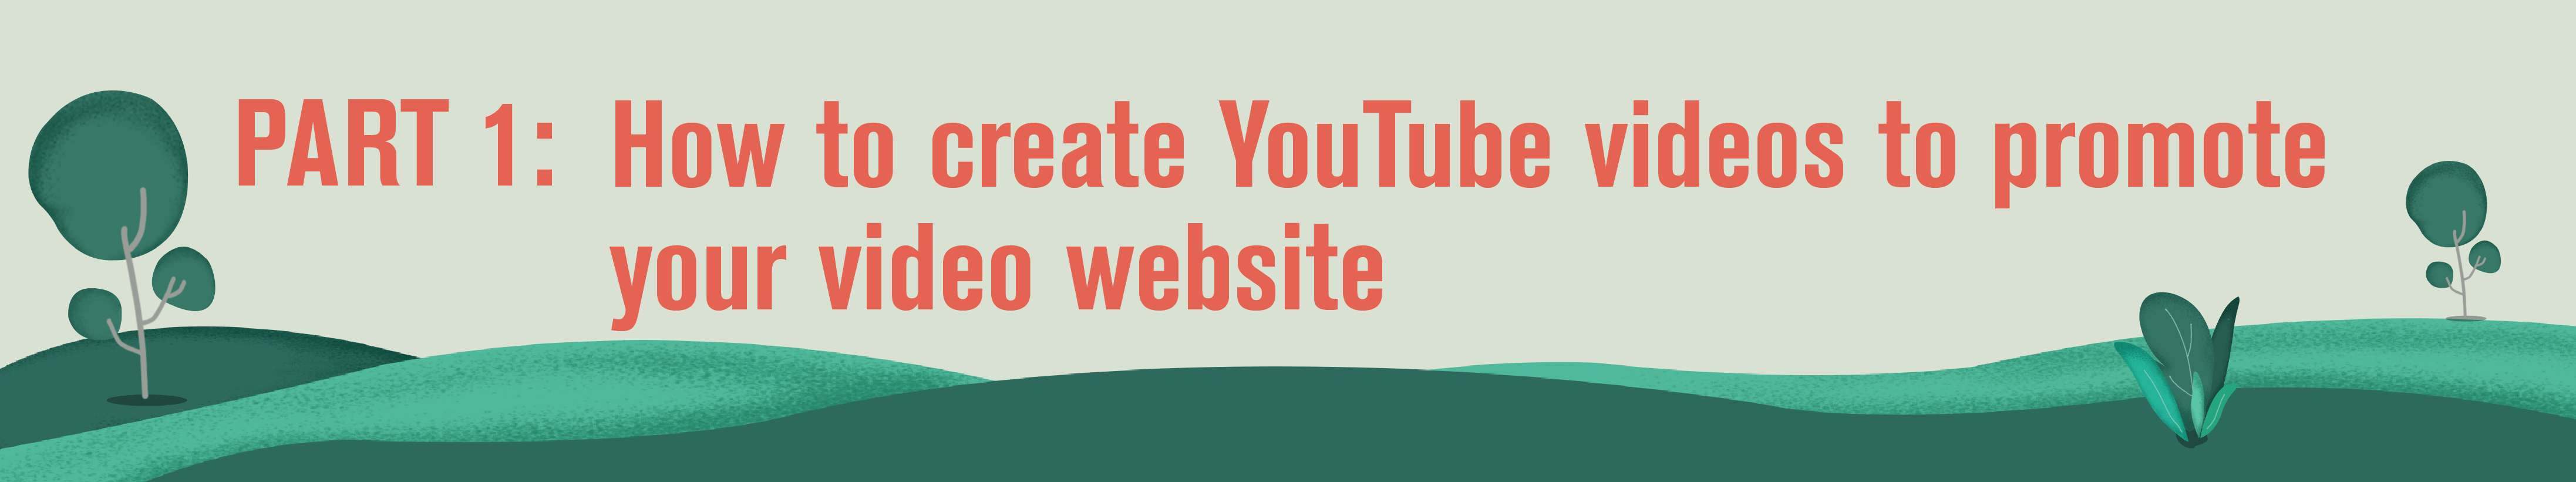 Part 1: How to create YouTube videos to promote your video website